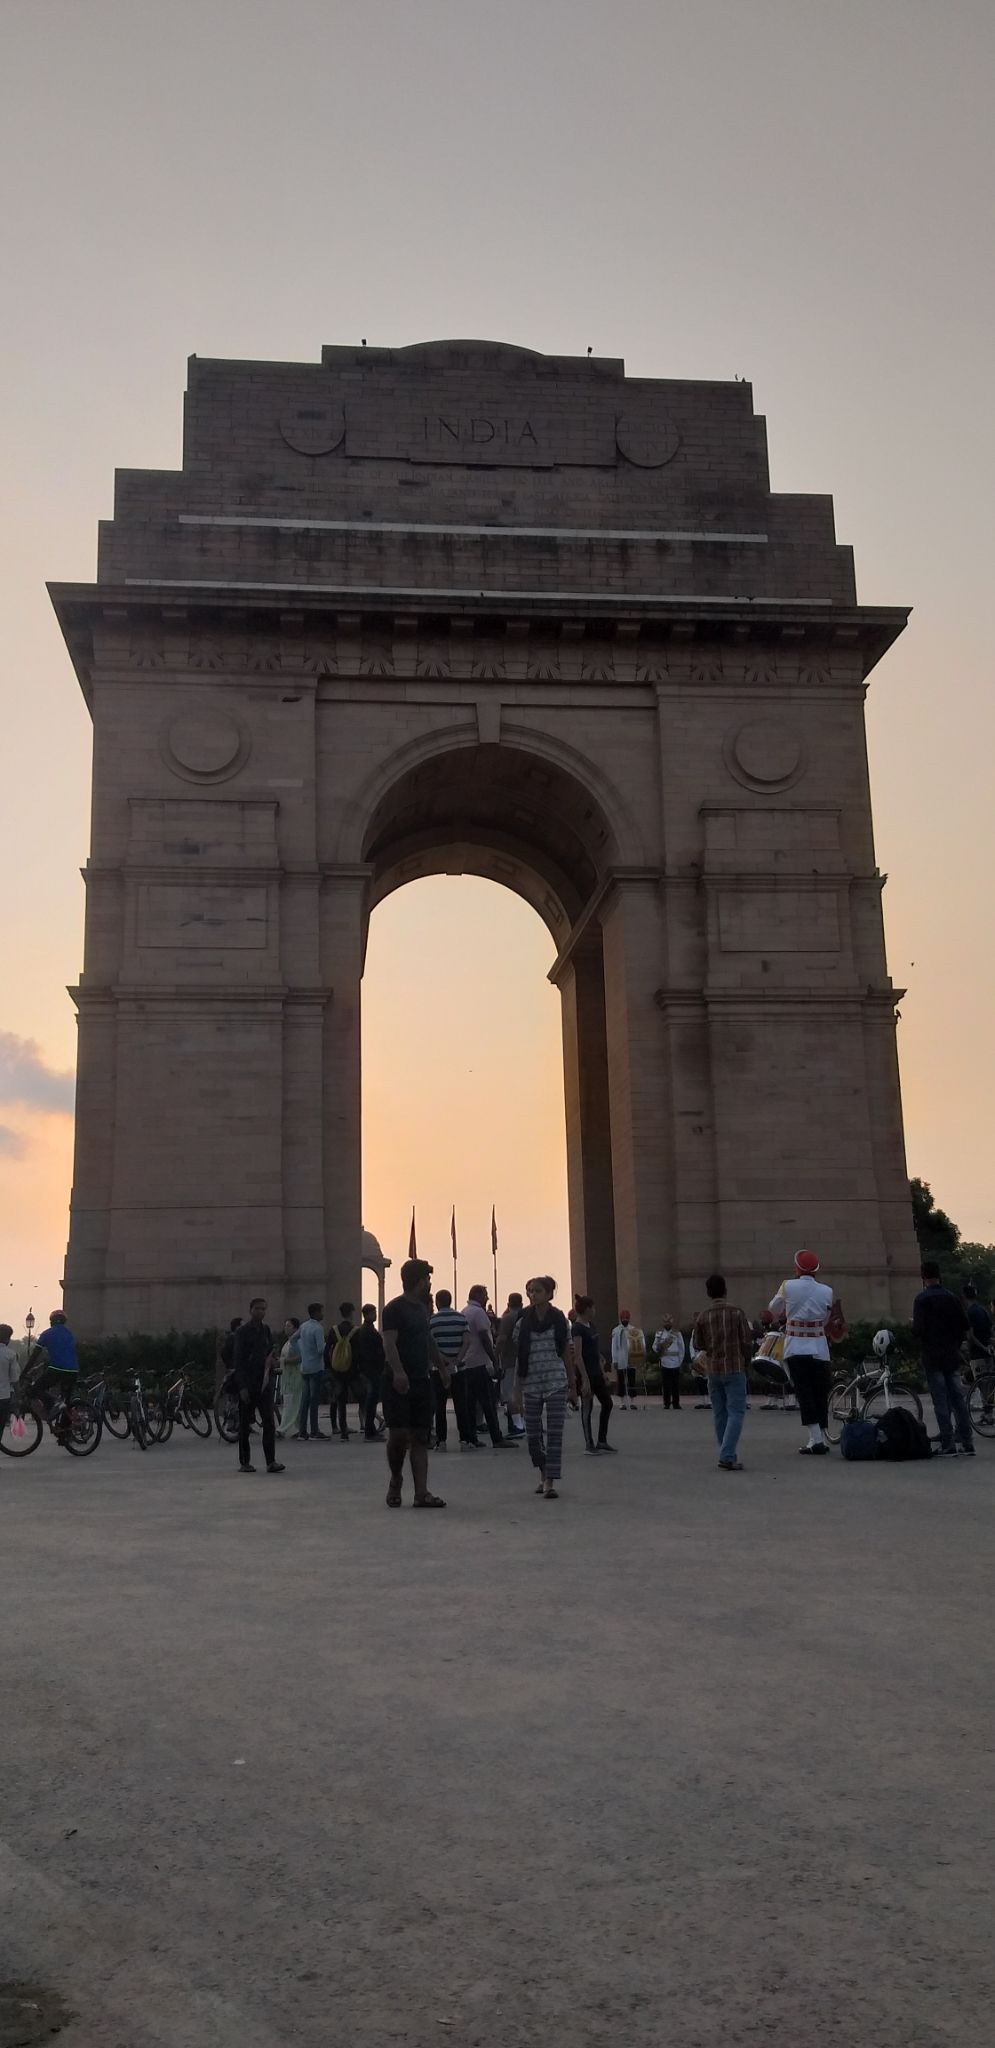 Photo of India Gate By Amal Mohan